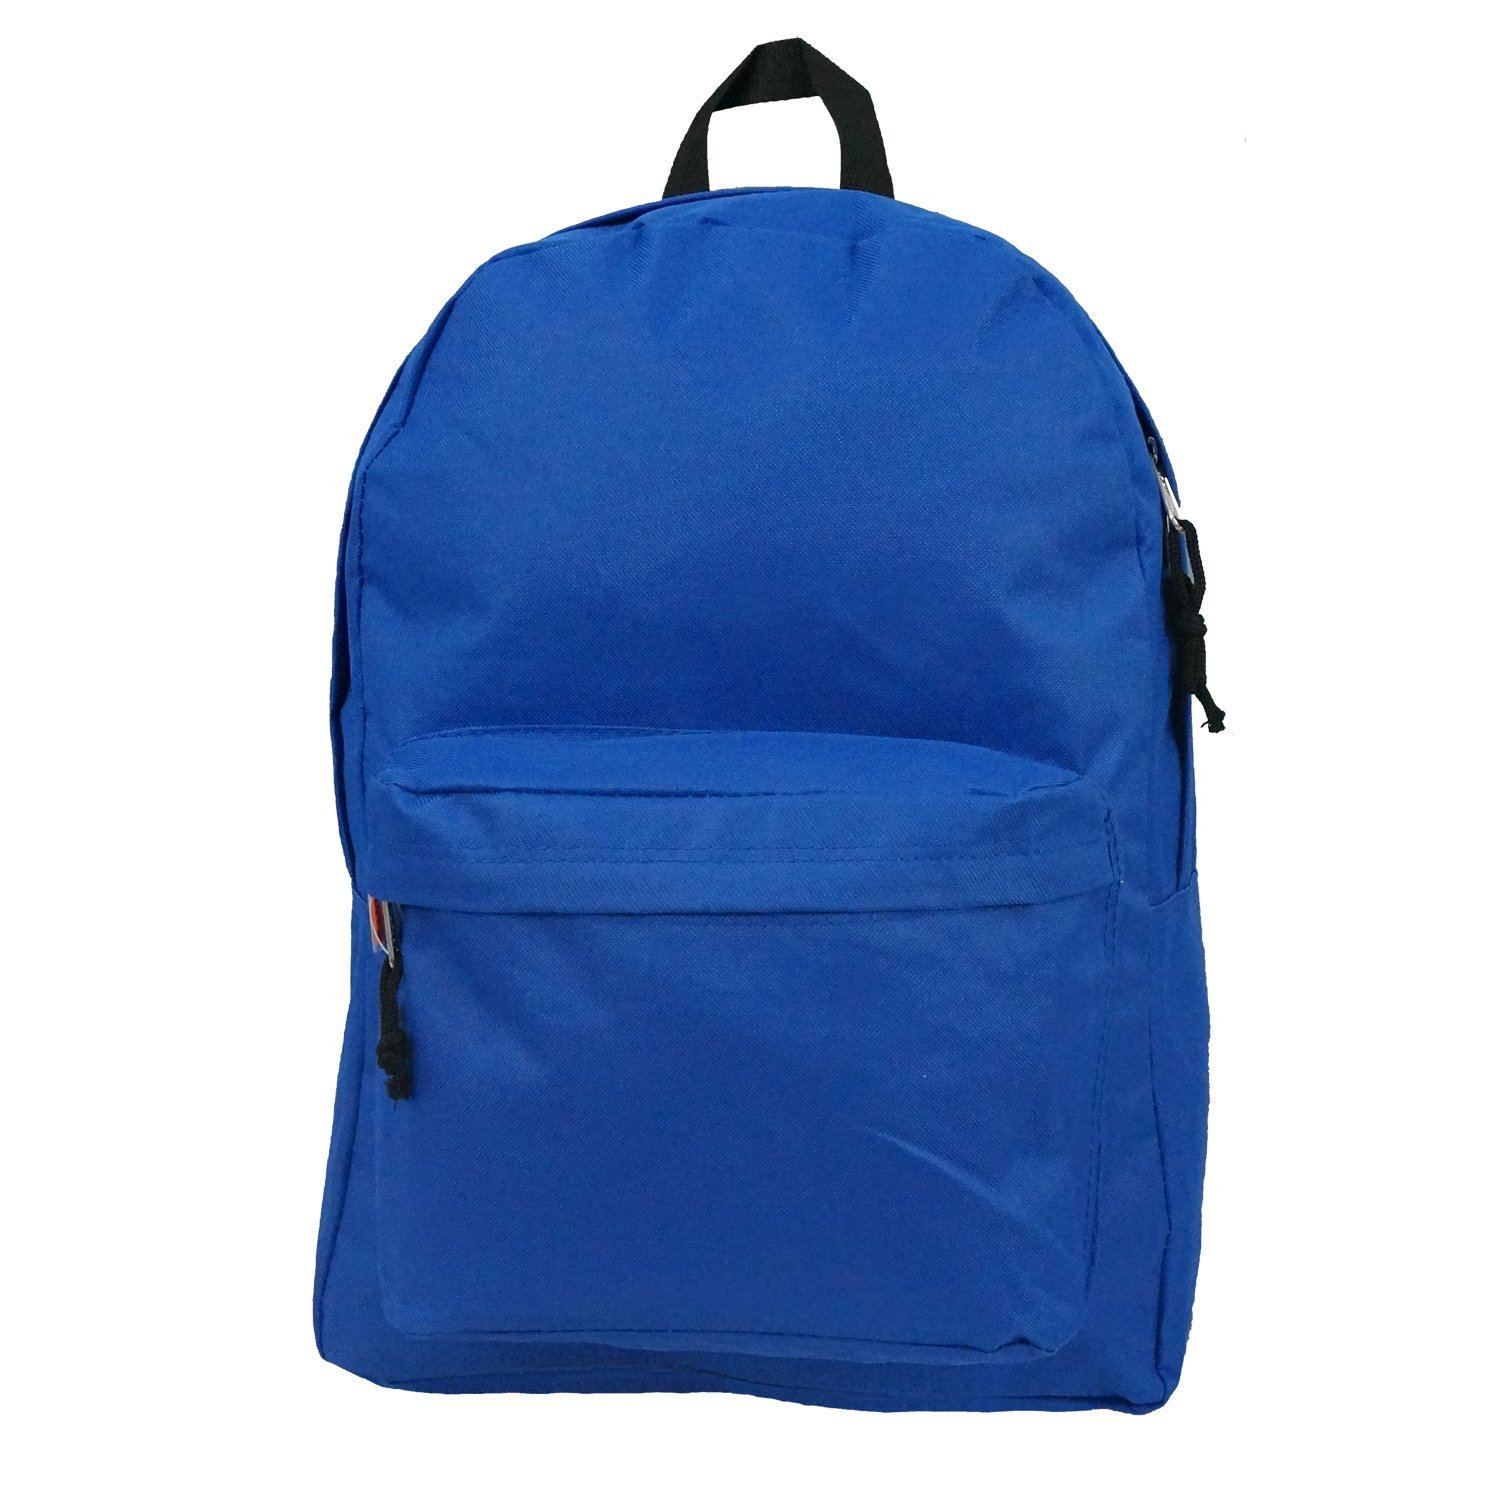 7c8f1a719 Get Quotations · Classic Bookbag Basic Backpack School Bookbag Student  Simple Daypack